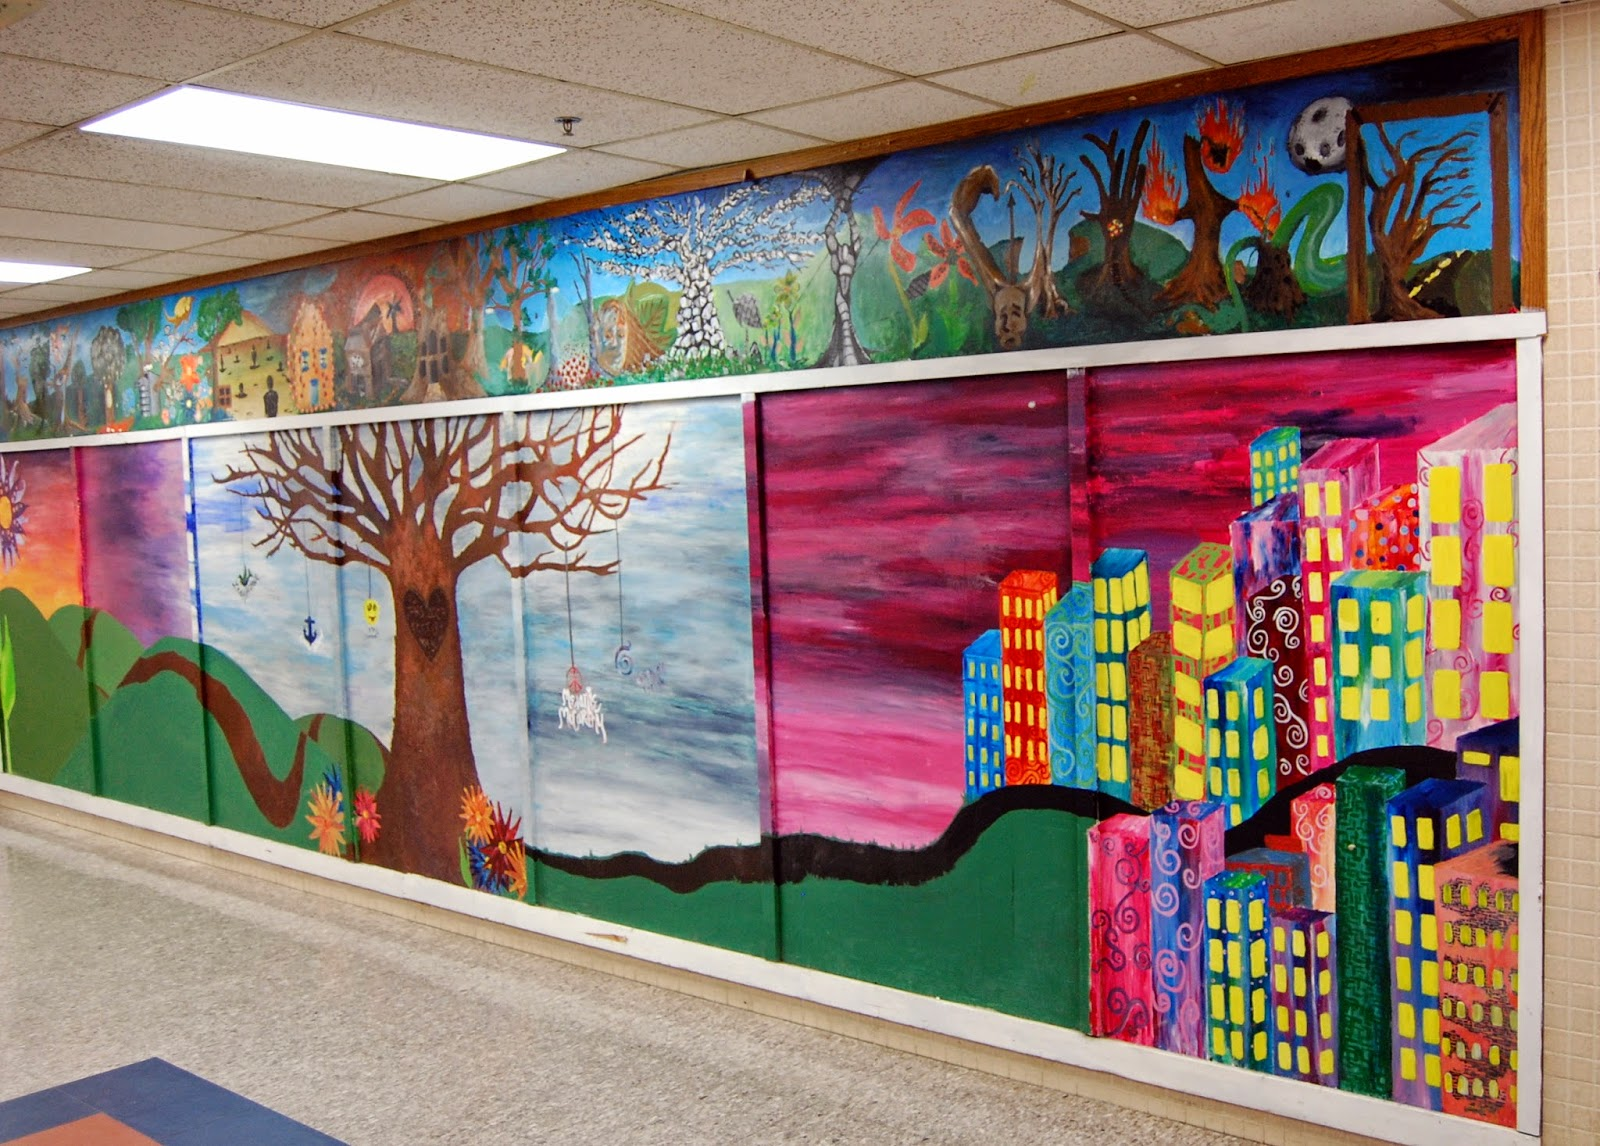 student art - full wall mural - view from the right